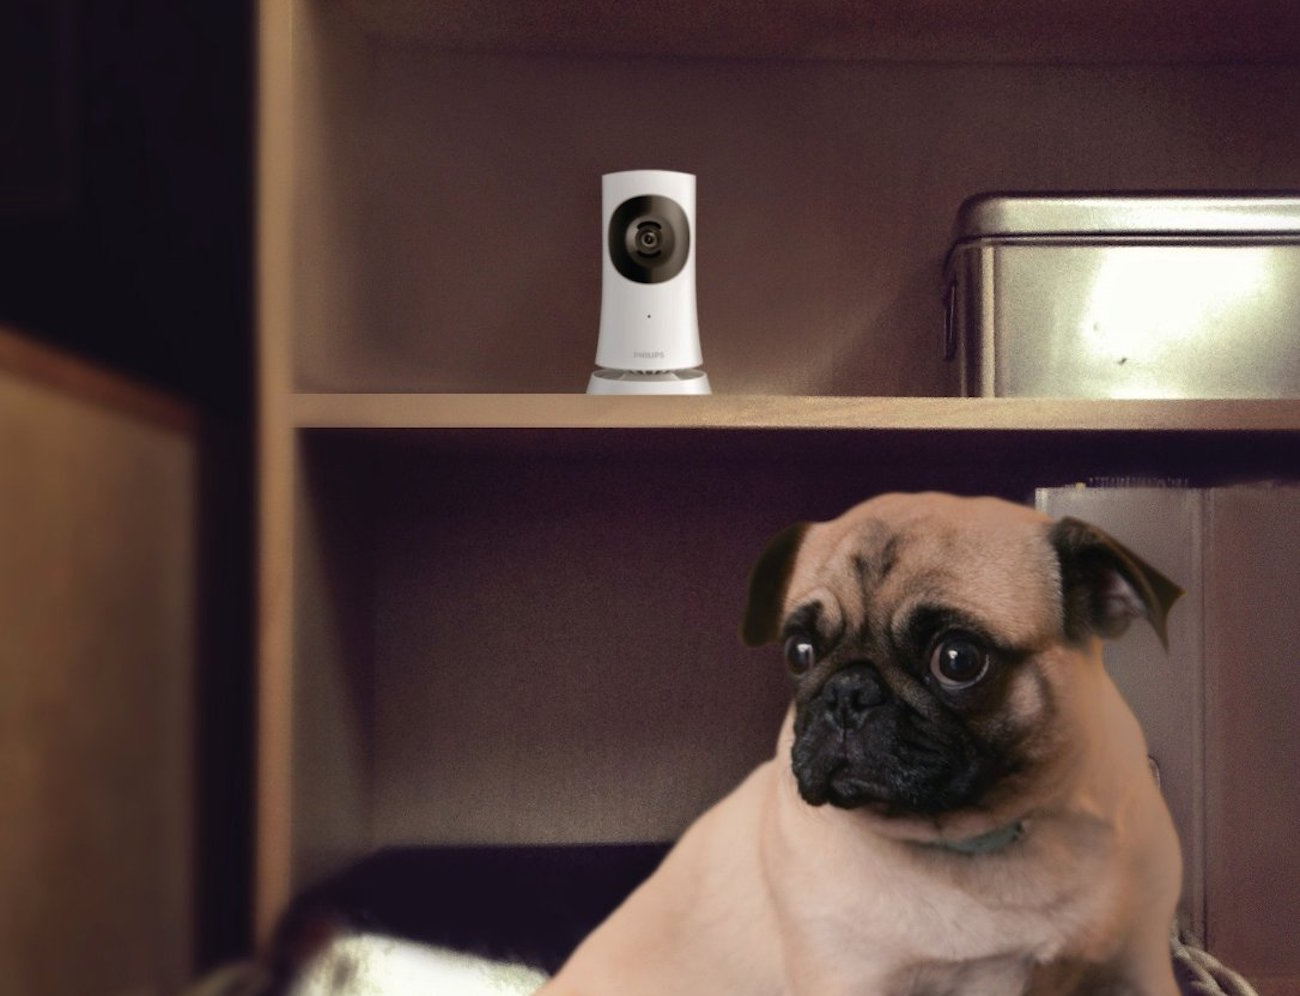 in-sight-wireless-hd-home-monitor-by-philips-01